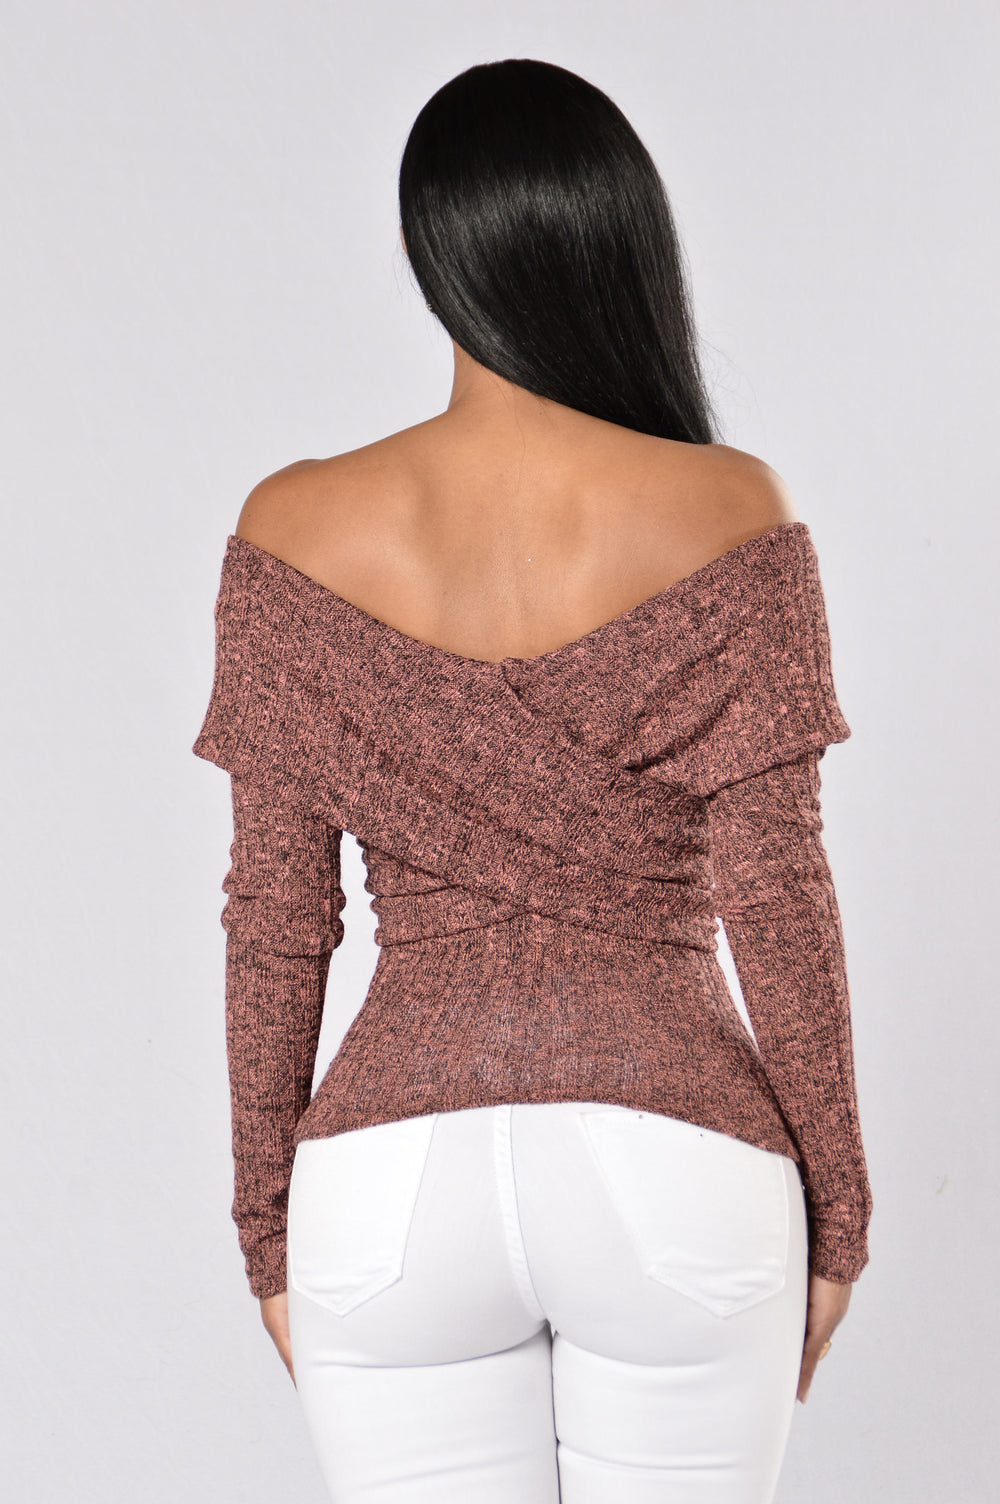 Hazey Shade Of Winter Sweater - Wine